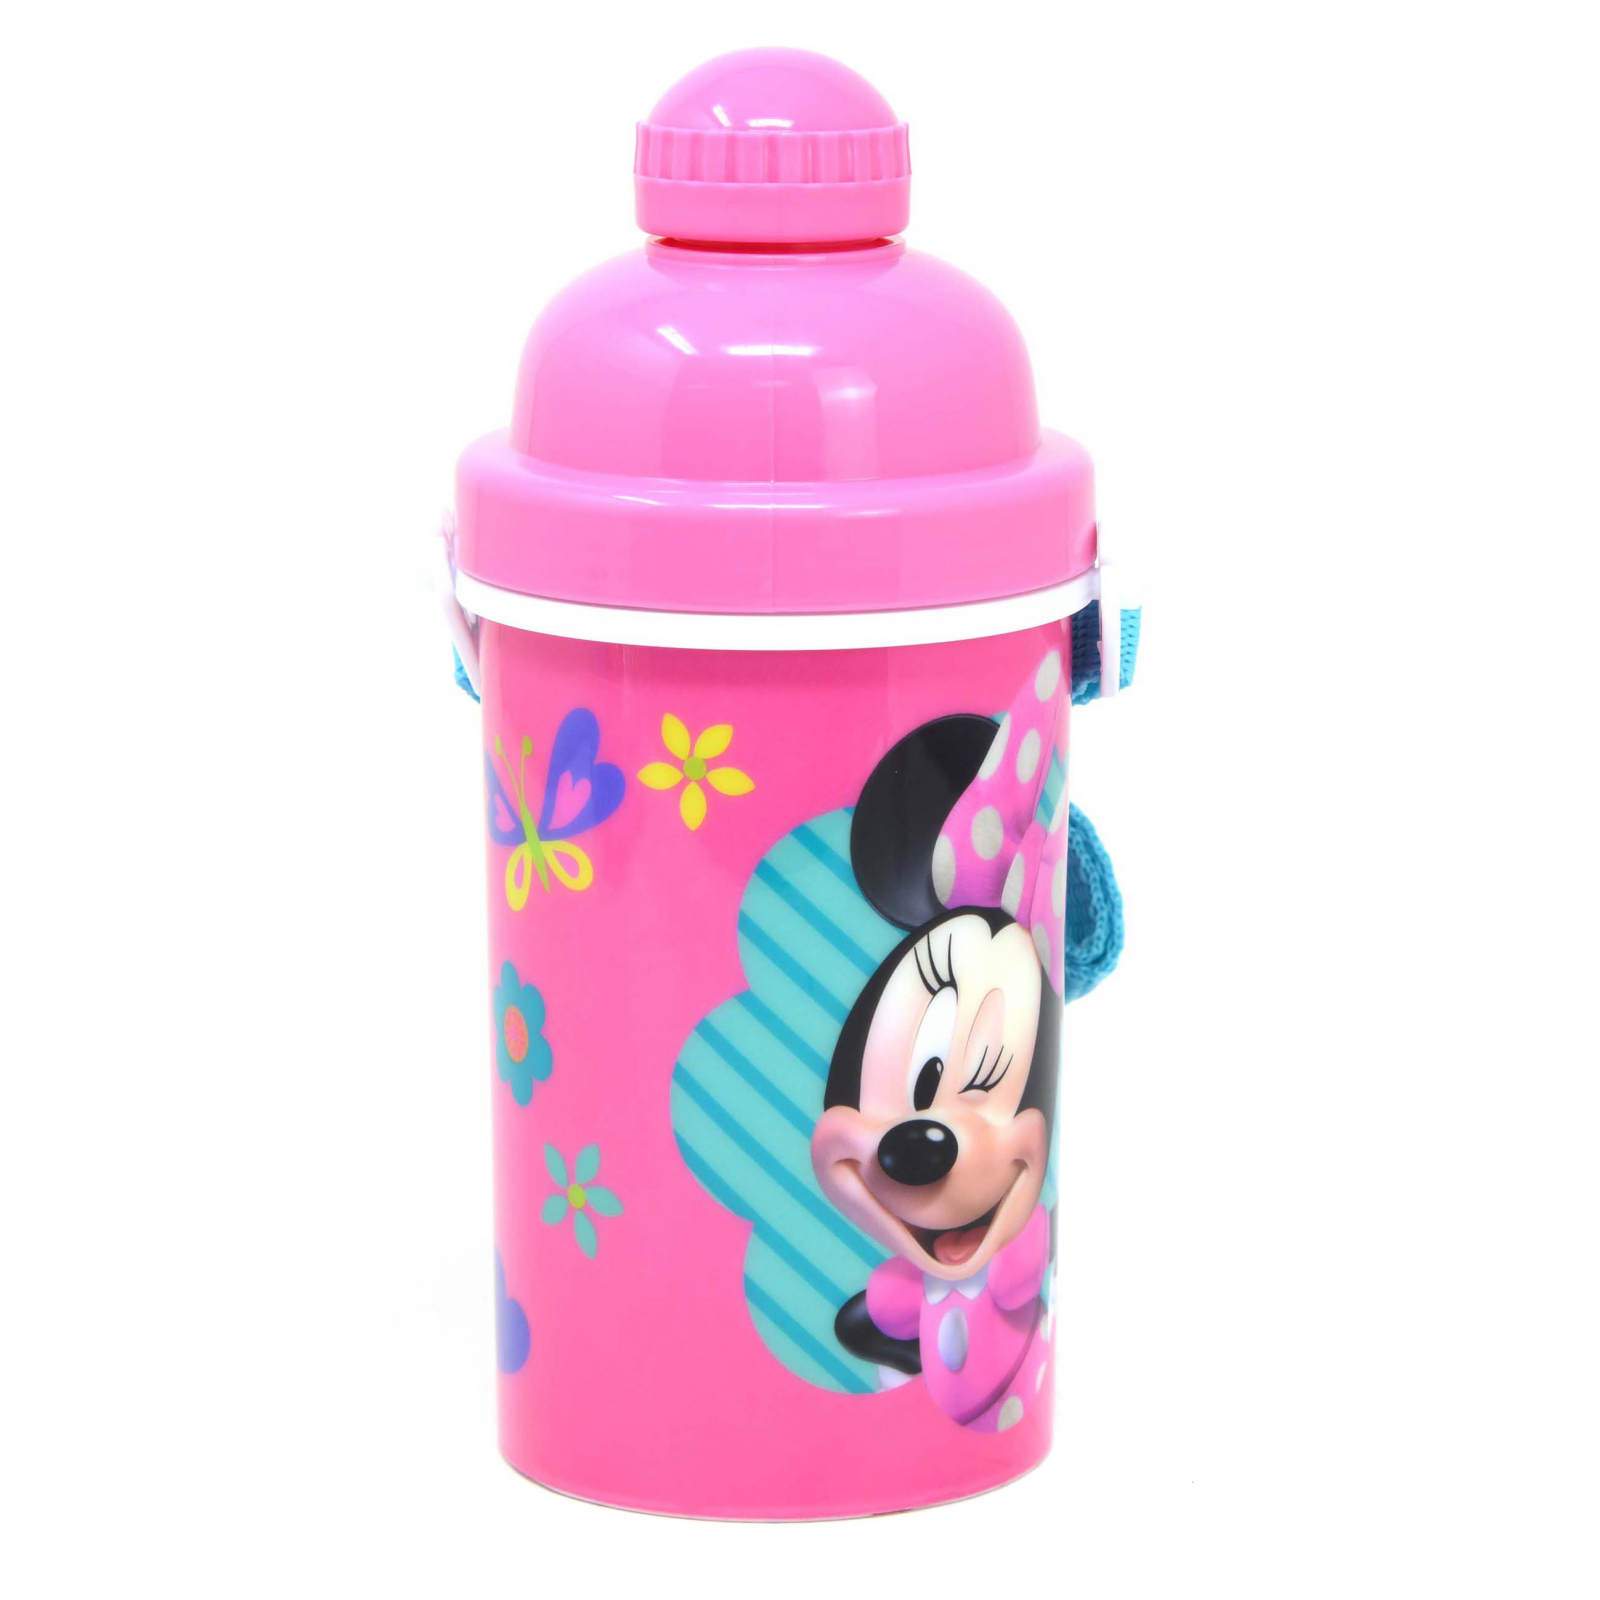 Disney Minnie Mouse Kids Water Bottle Canteen with Pop Top